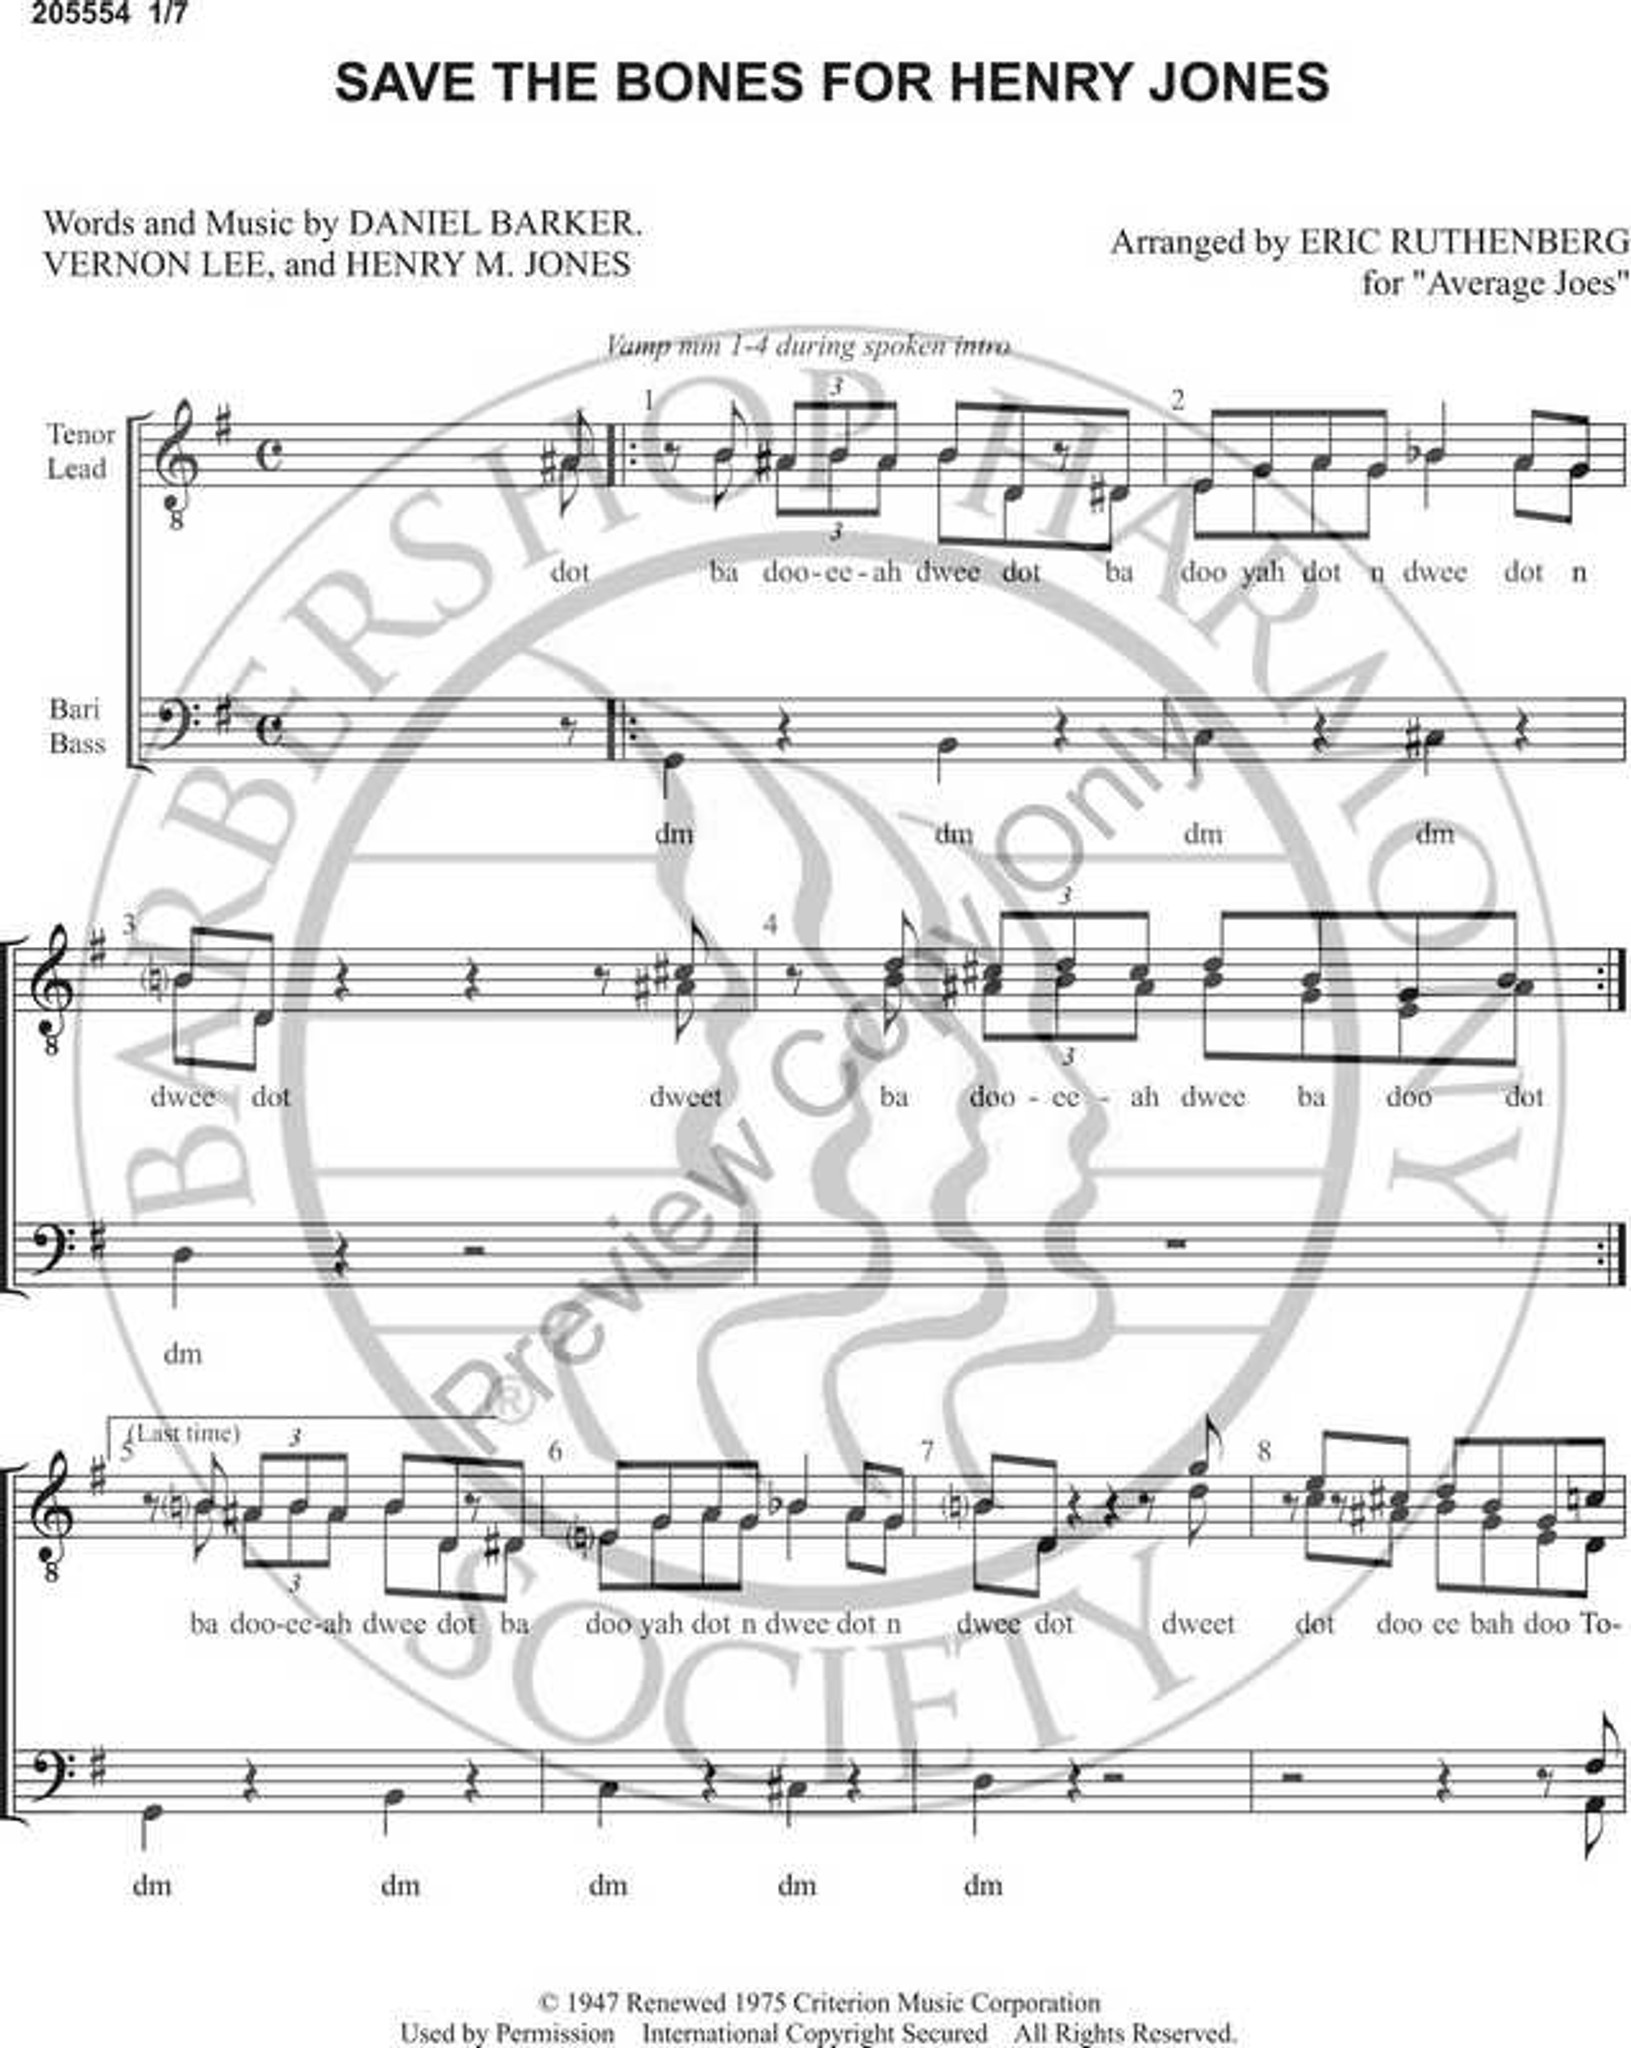 hight resolution of save the bones for henry jones 1 ttbb arr eric ruthenberg download unpub barbershop harmony society